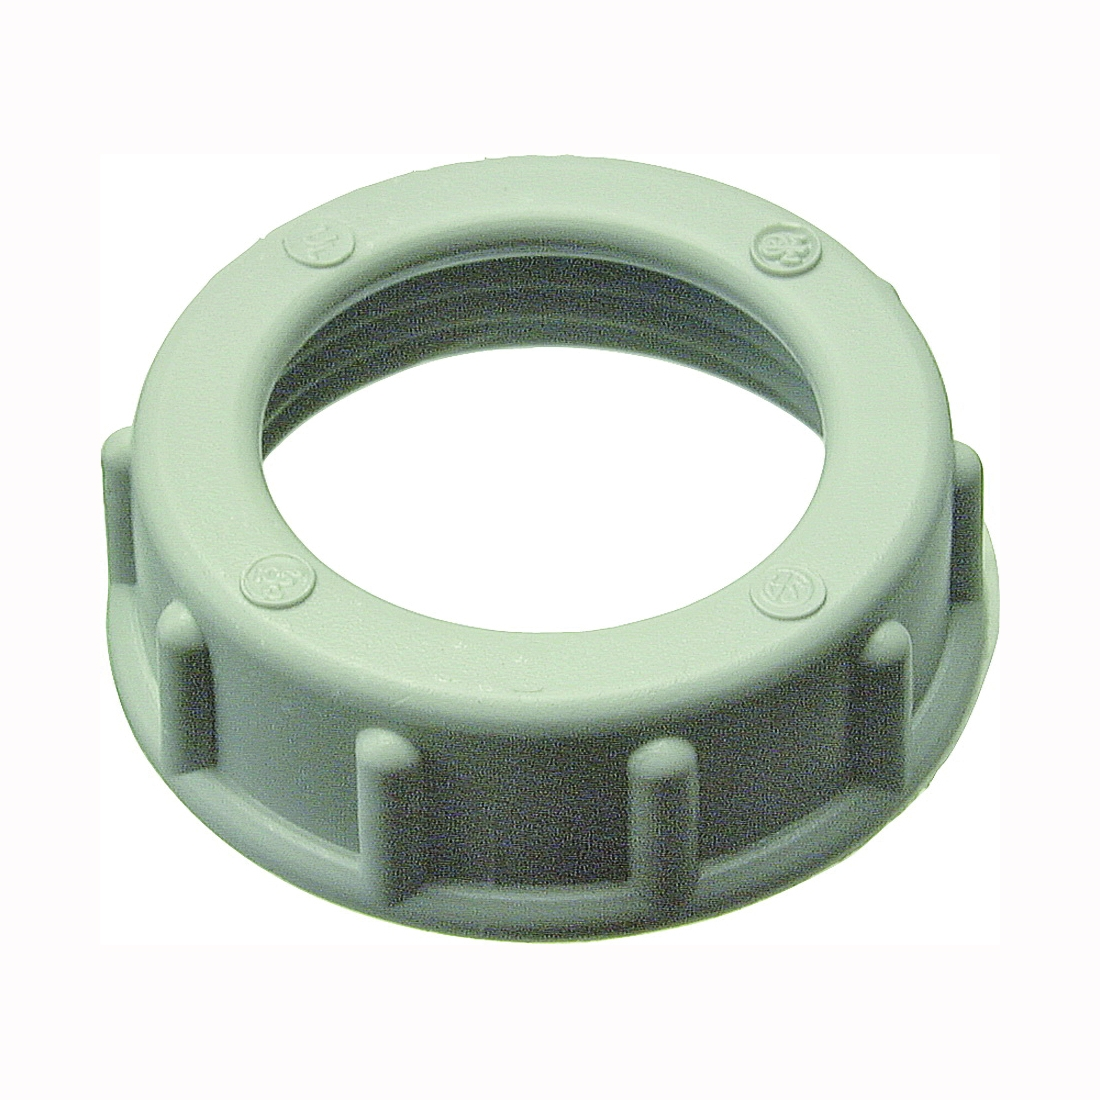 Picture of Halex 75205B Conduit Bushing, 1/2 in Trade, Thermoplastic